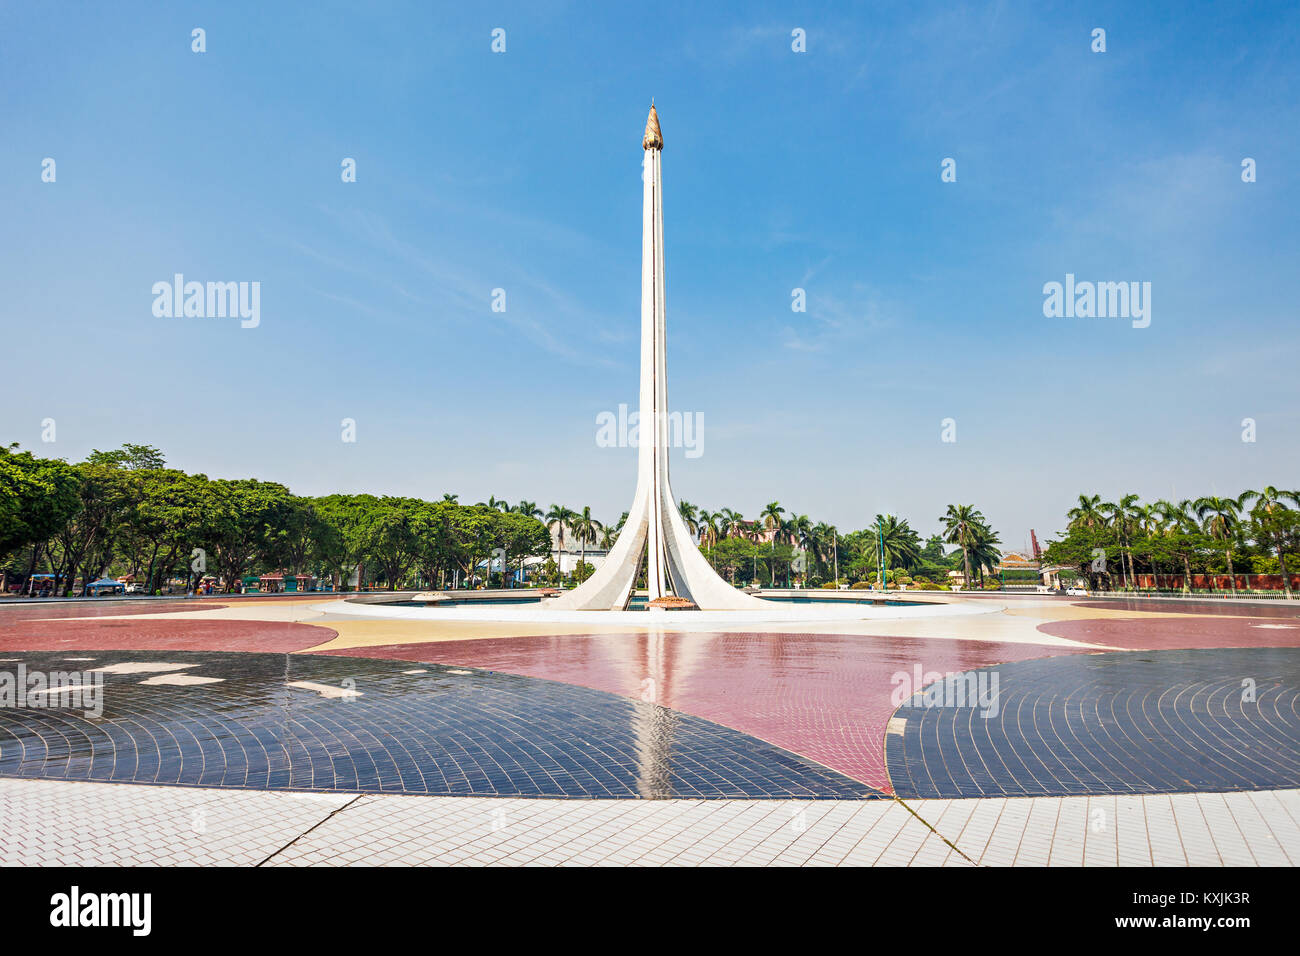 JAKARTA, INDONESIA - OCTOBER 20, 2014: Monument in Taman Mini Indonesia Indah is a culture based recreational area - Stock Image